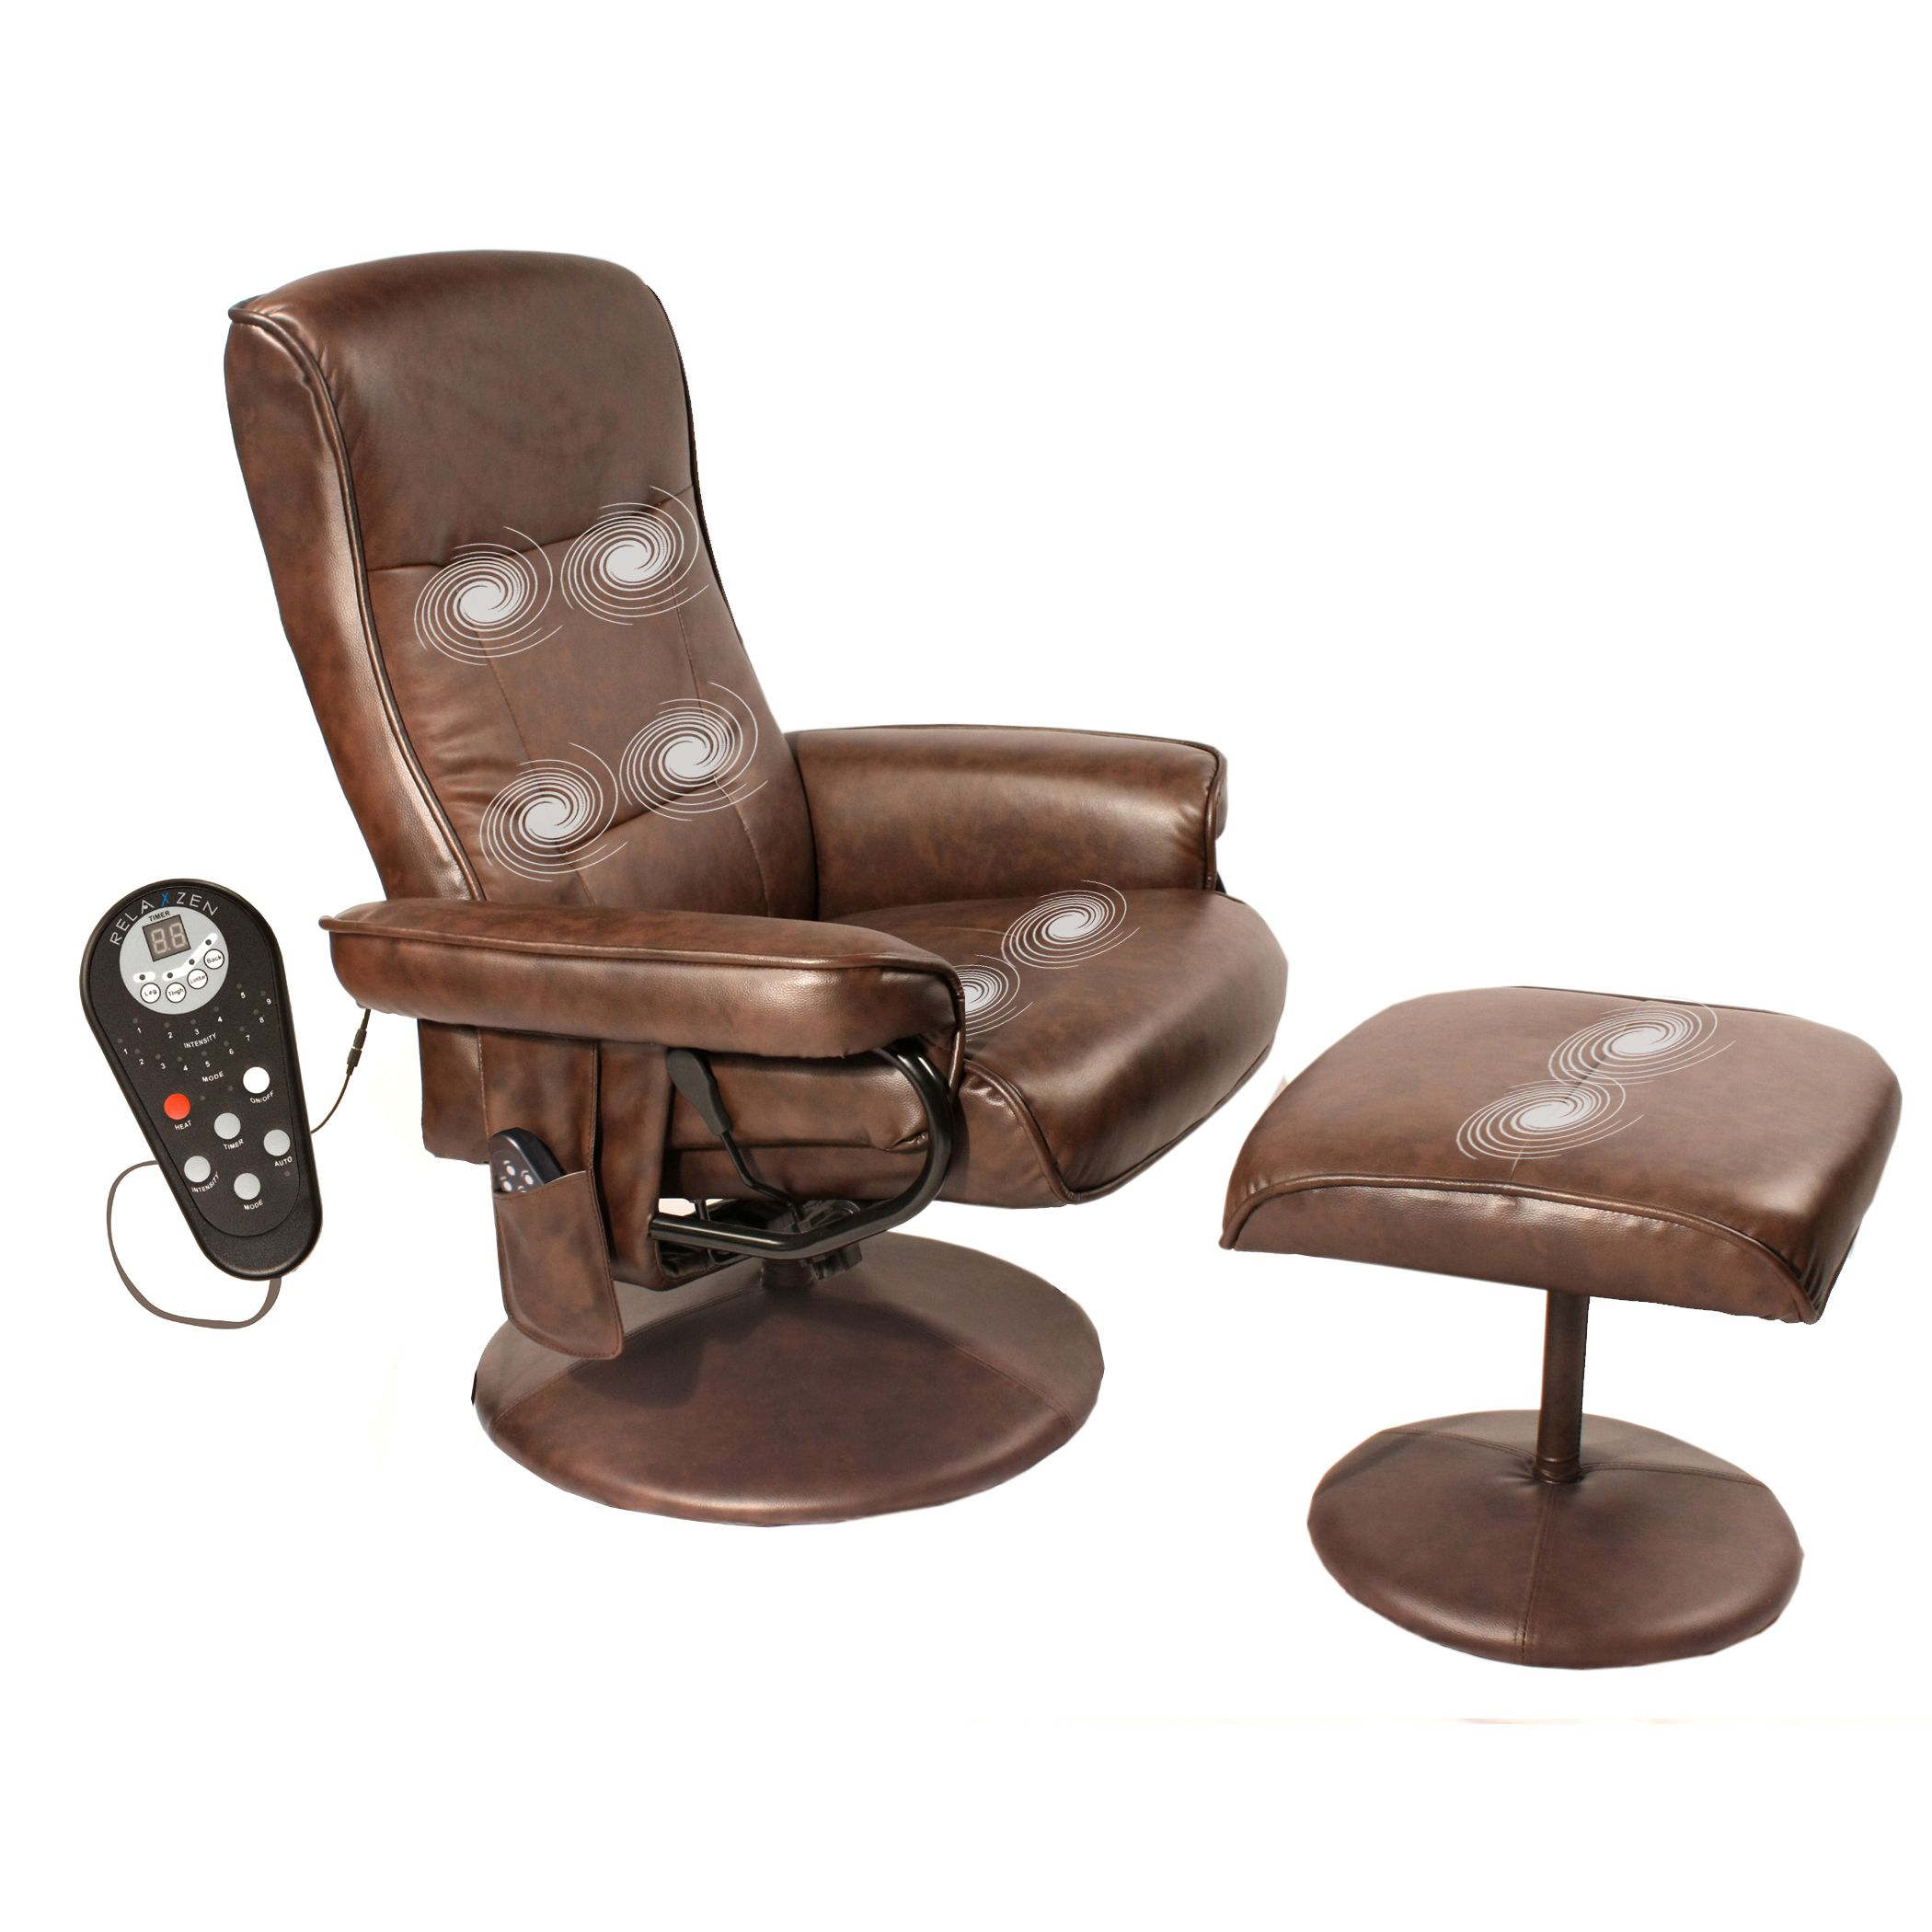 Enjoy your own personal masseuse anytime with this brown massage